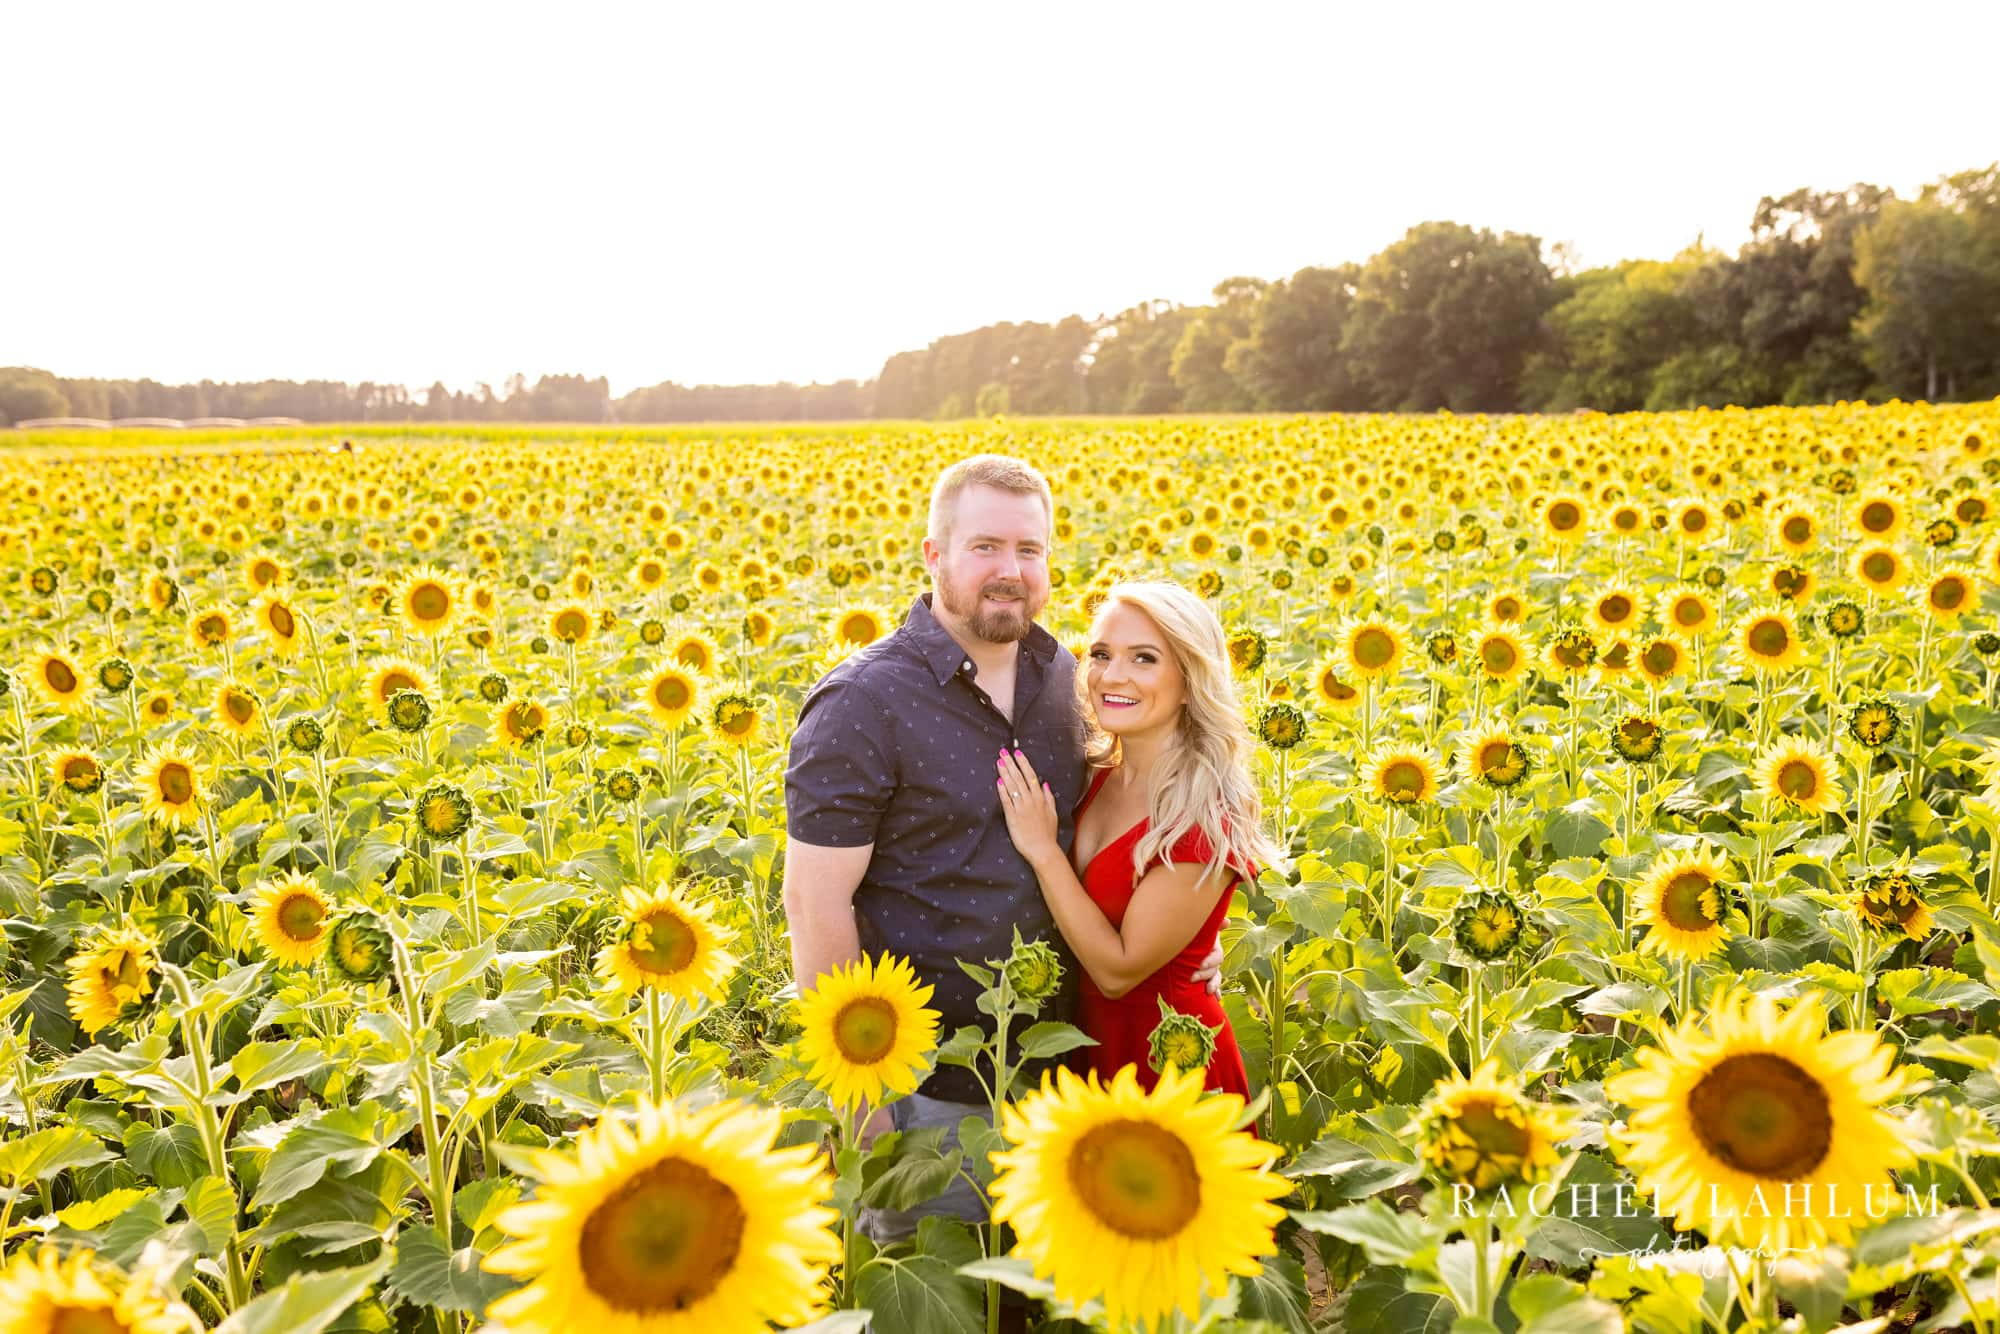 Newly engaged couple pose in a sunflower field at Green Barn Garden Center in Isanti, Minnesota.